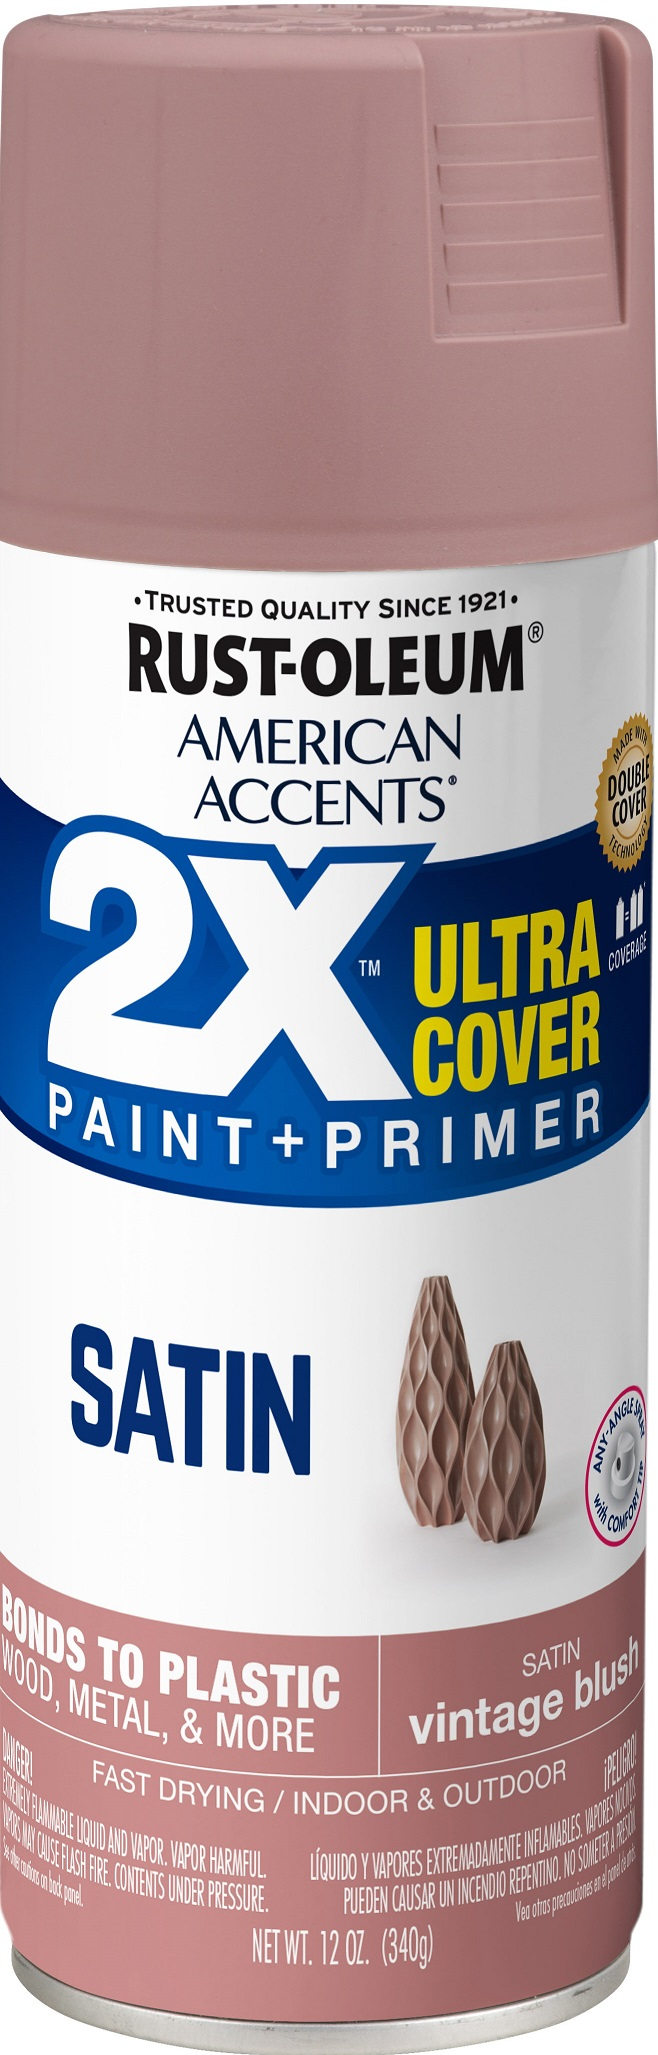 (3 Pack) Rust-Oleum American Accents Ultra Cover 2X Satin Vintage Blush Spray Paint and Primer in 1, 12 oz